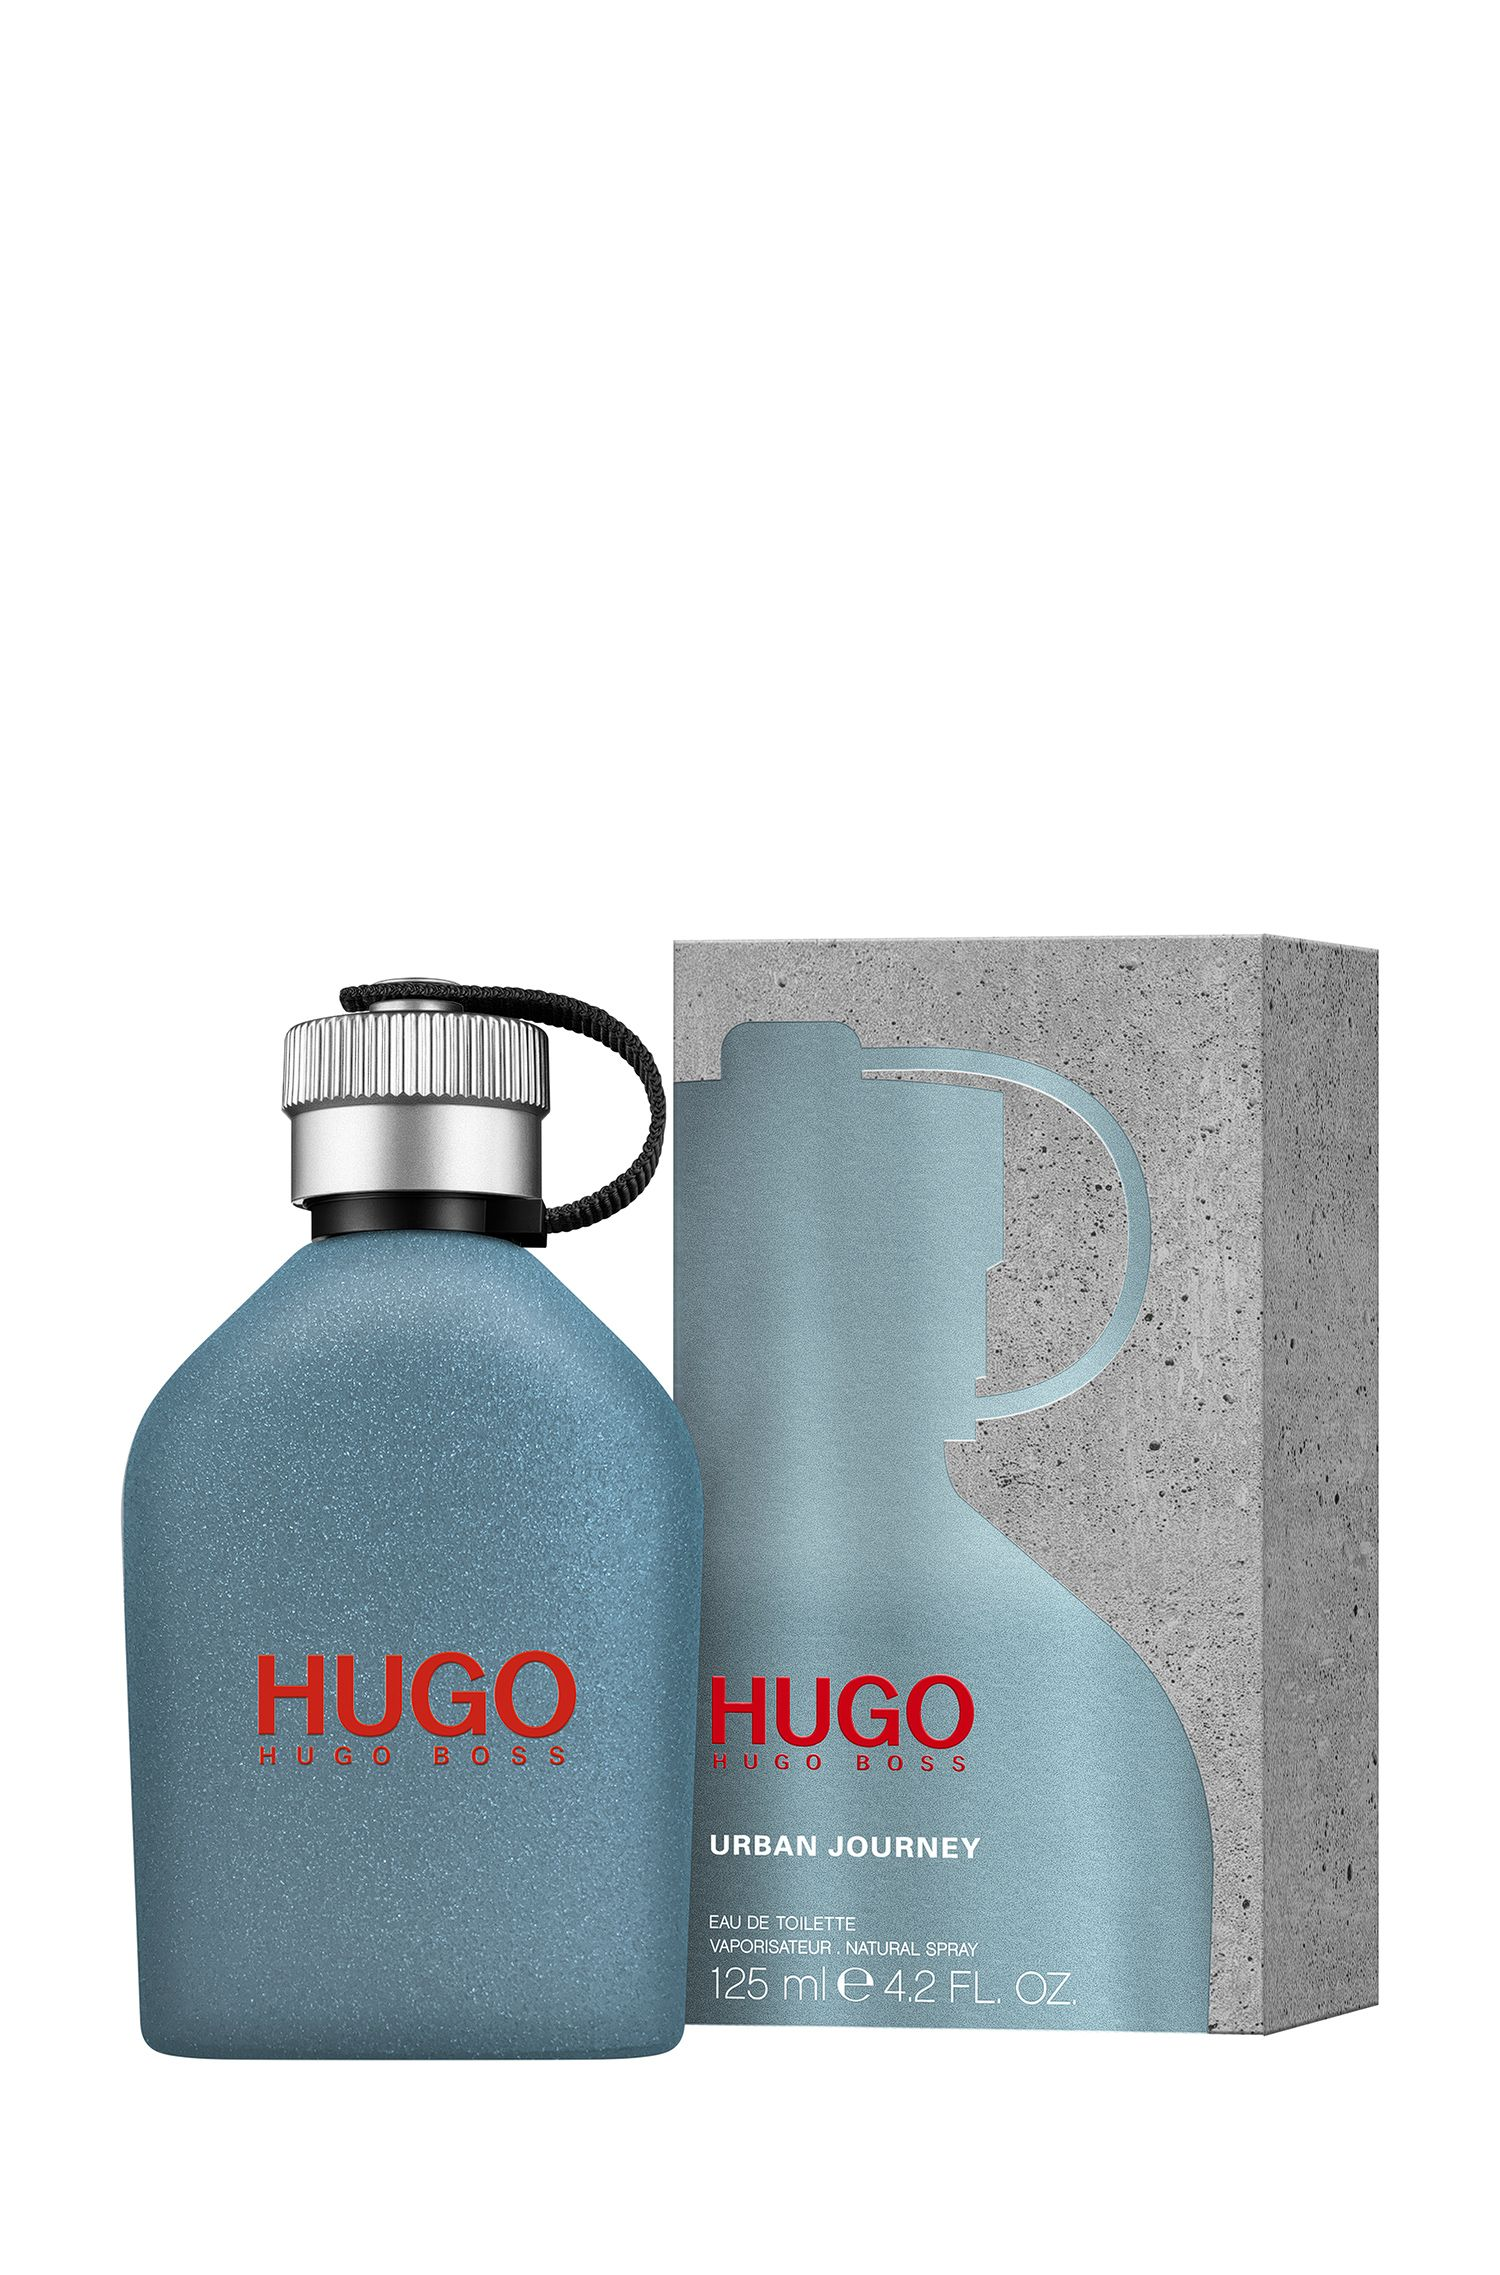 HUGO Urban Journey 125ml eau de toilette, Assorted-Pre-Pack